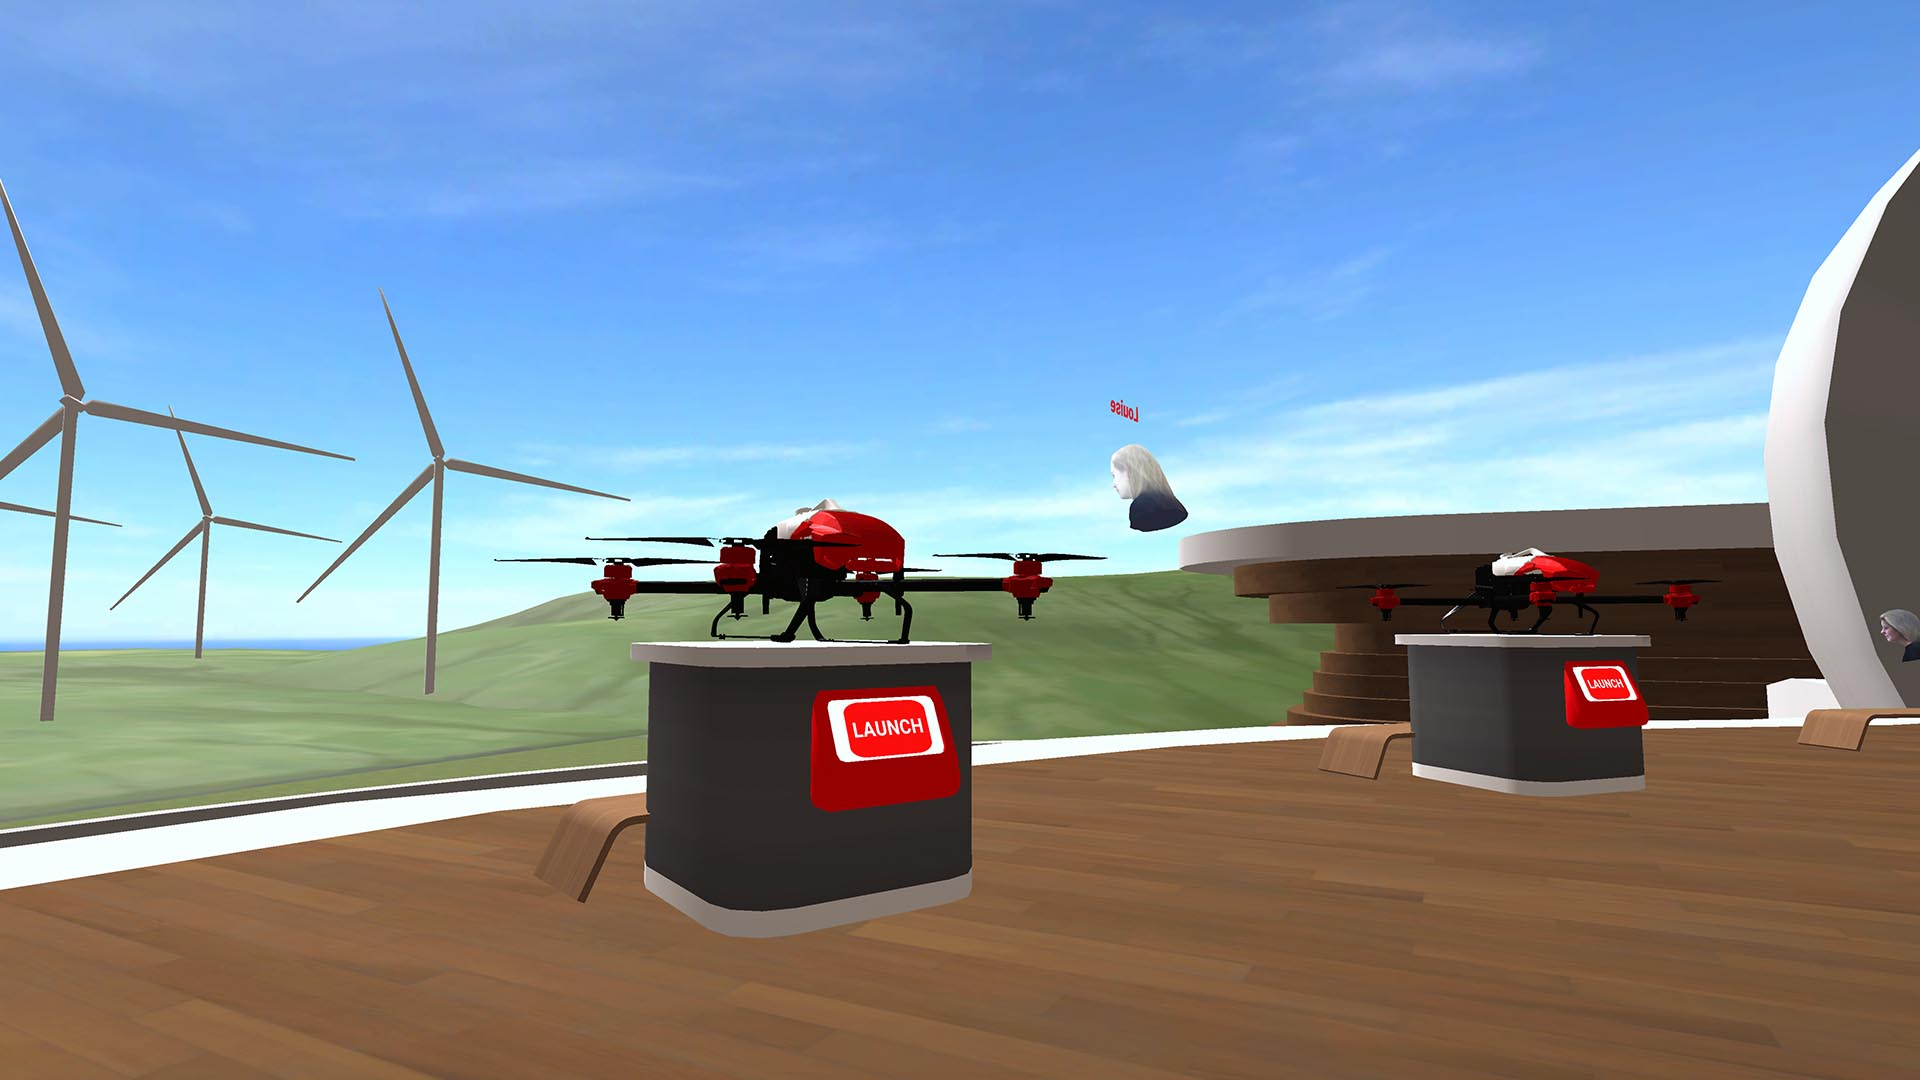 XAG drone flying experience in AAC VR Virtual Campus Environment for STEMCONNECT2020